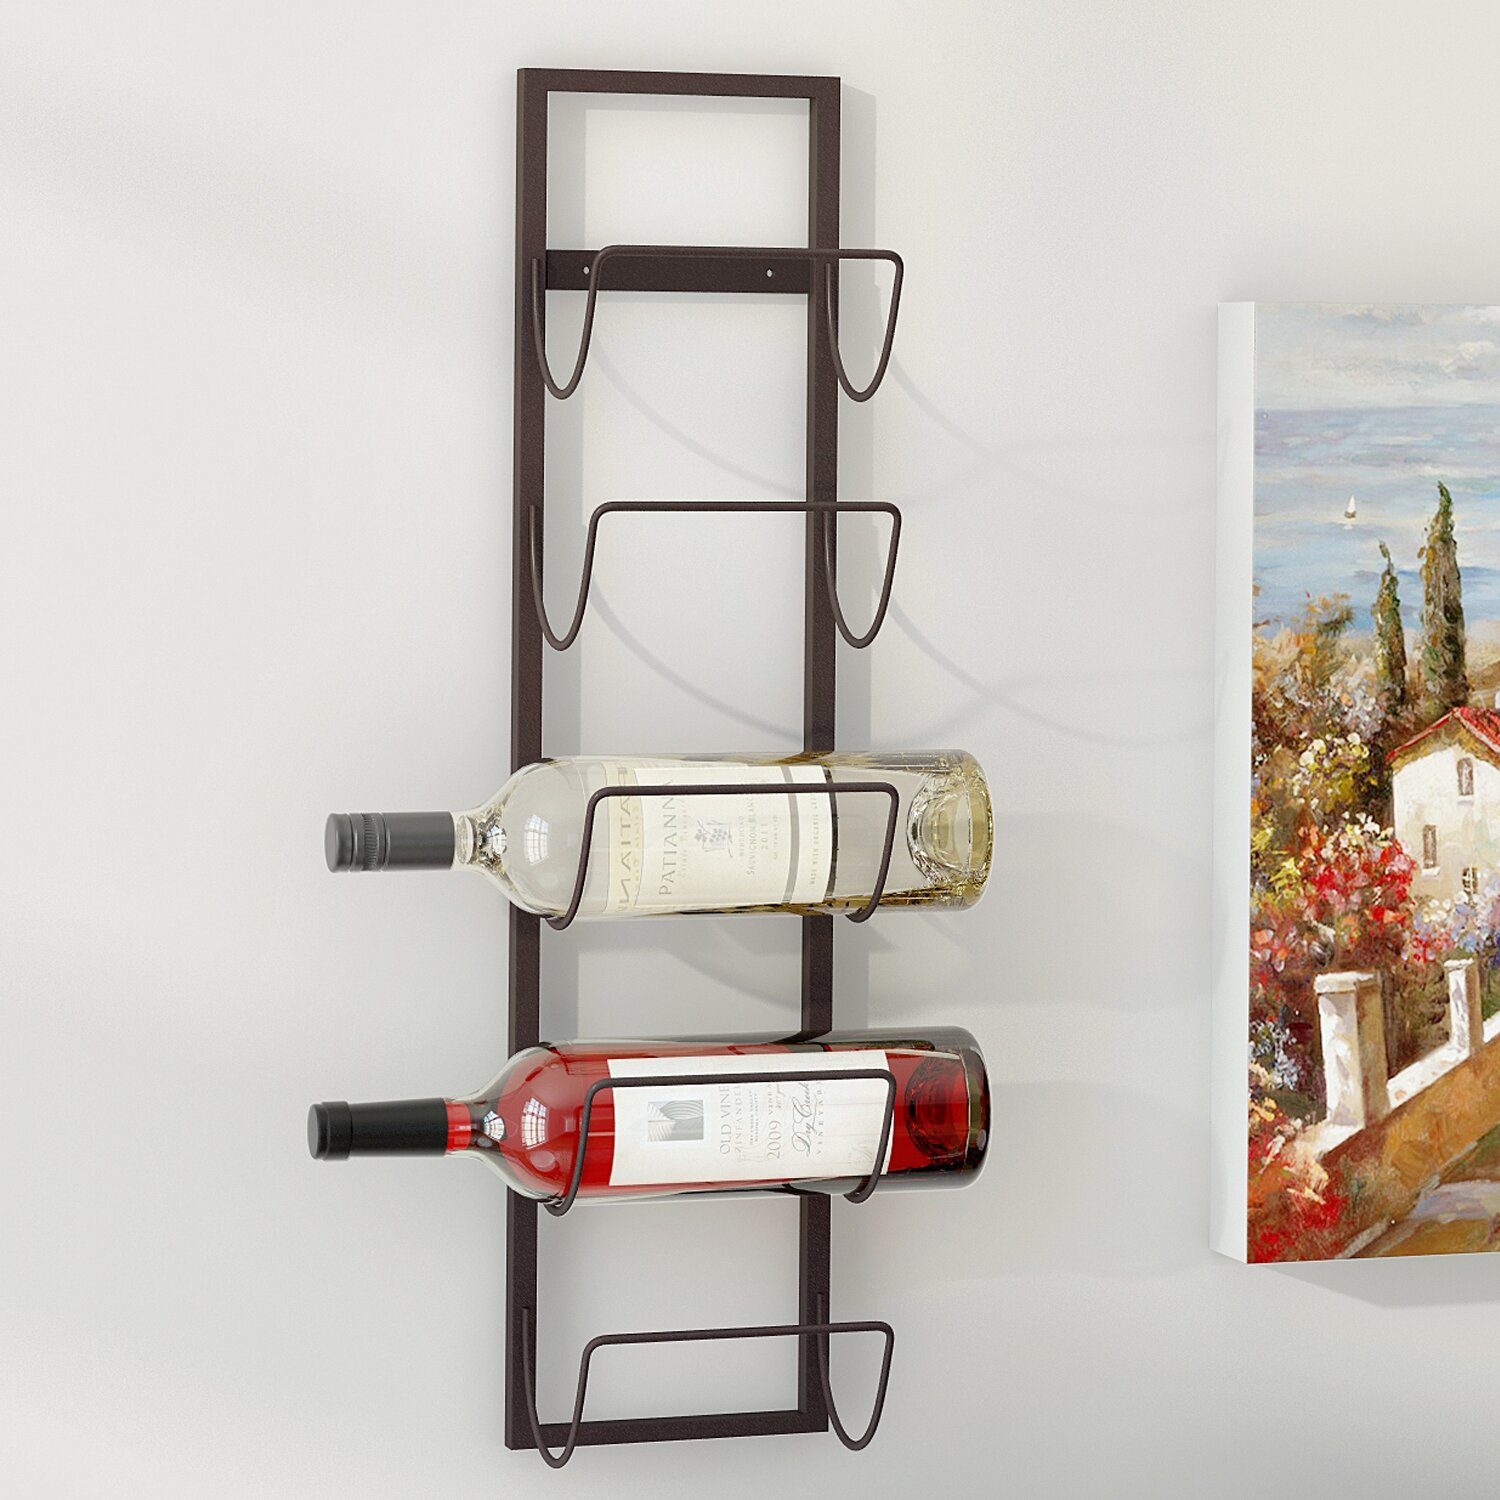 charlton home leveson 5 bottle wall mounted wine rack reviews wayfair. Black Bedroom Furniture Sets. Home Design Ideas